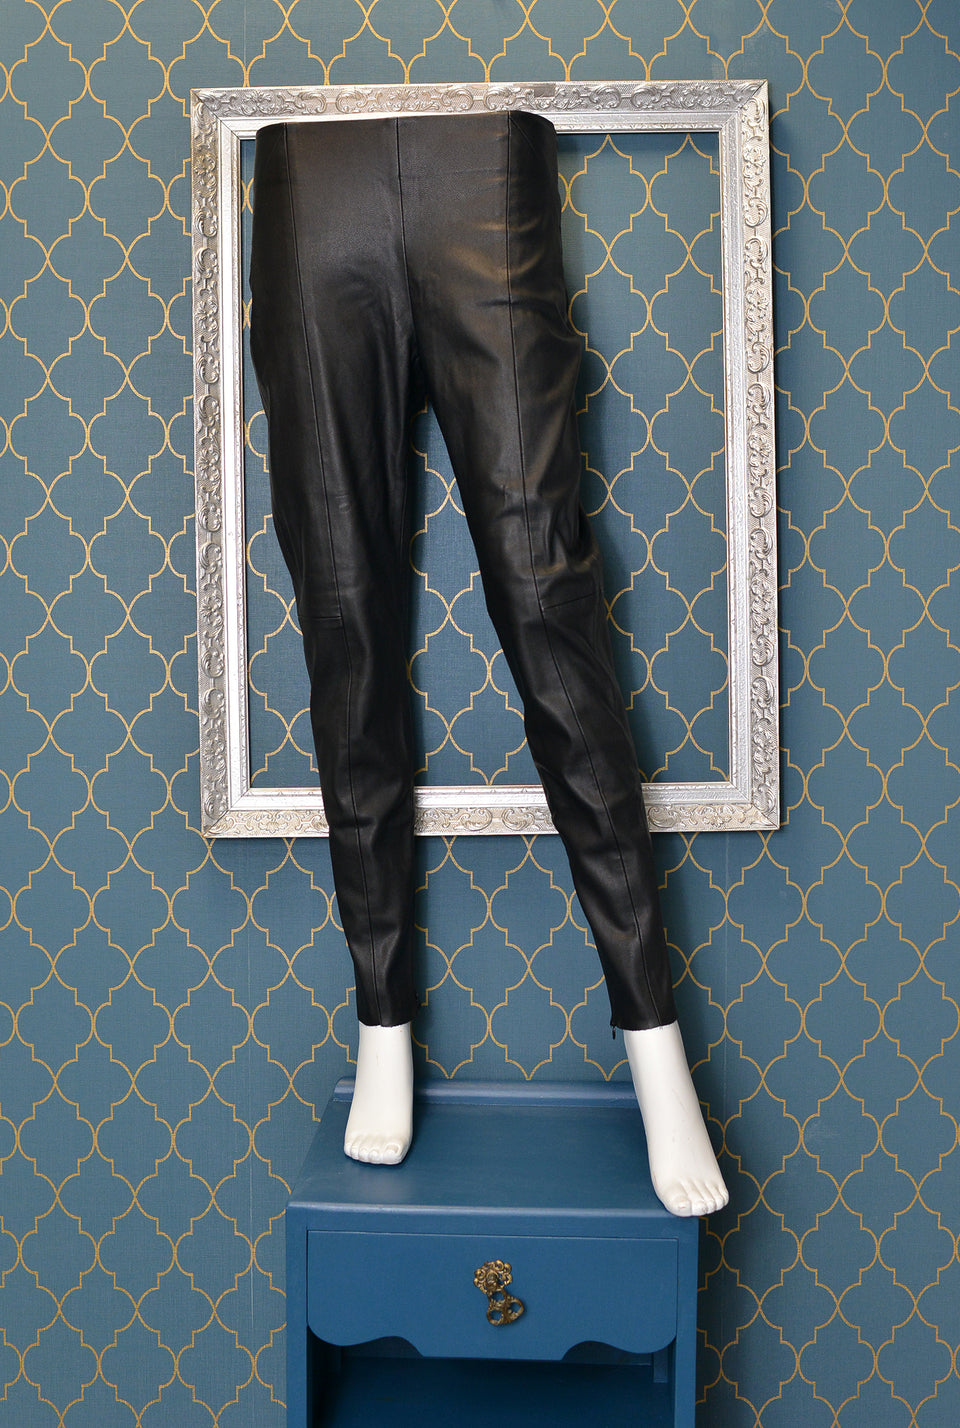 ZARA Women's Black Faux Leather Slim Leg Trousers/Cigarette Pant. Size M. Pre-loved.